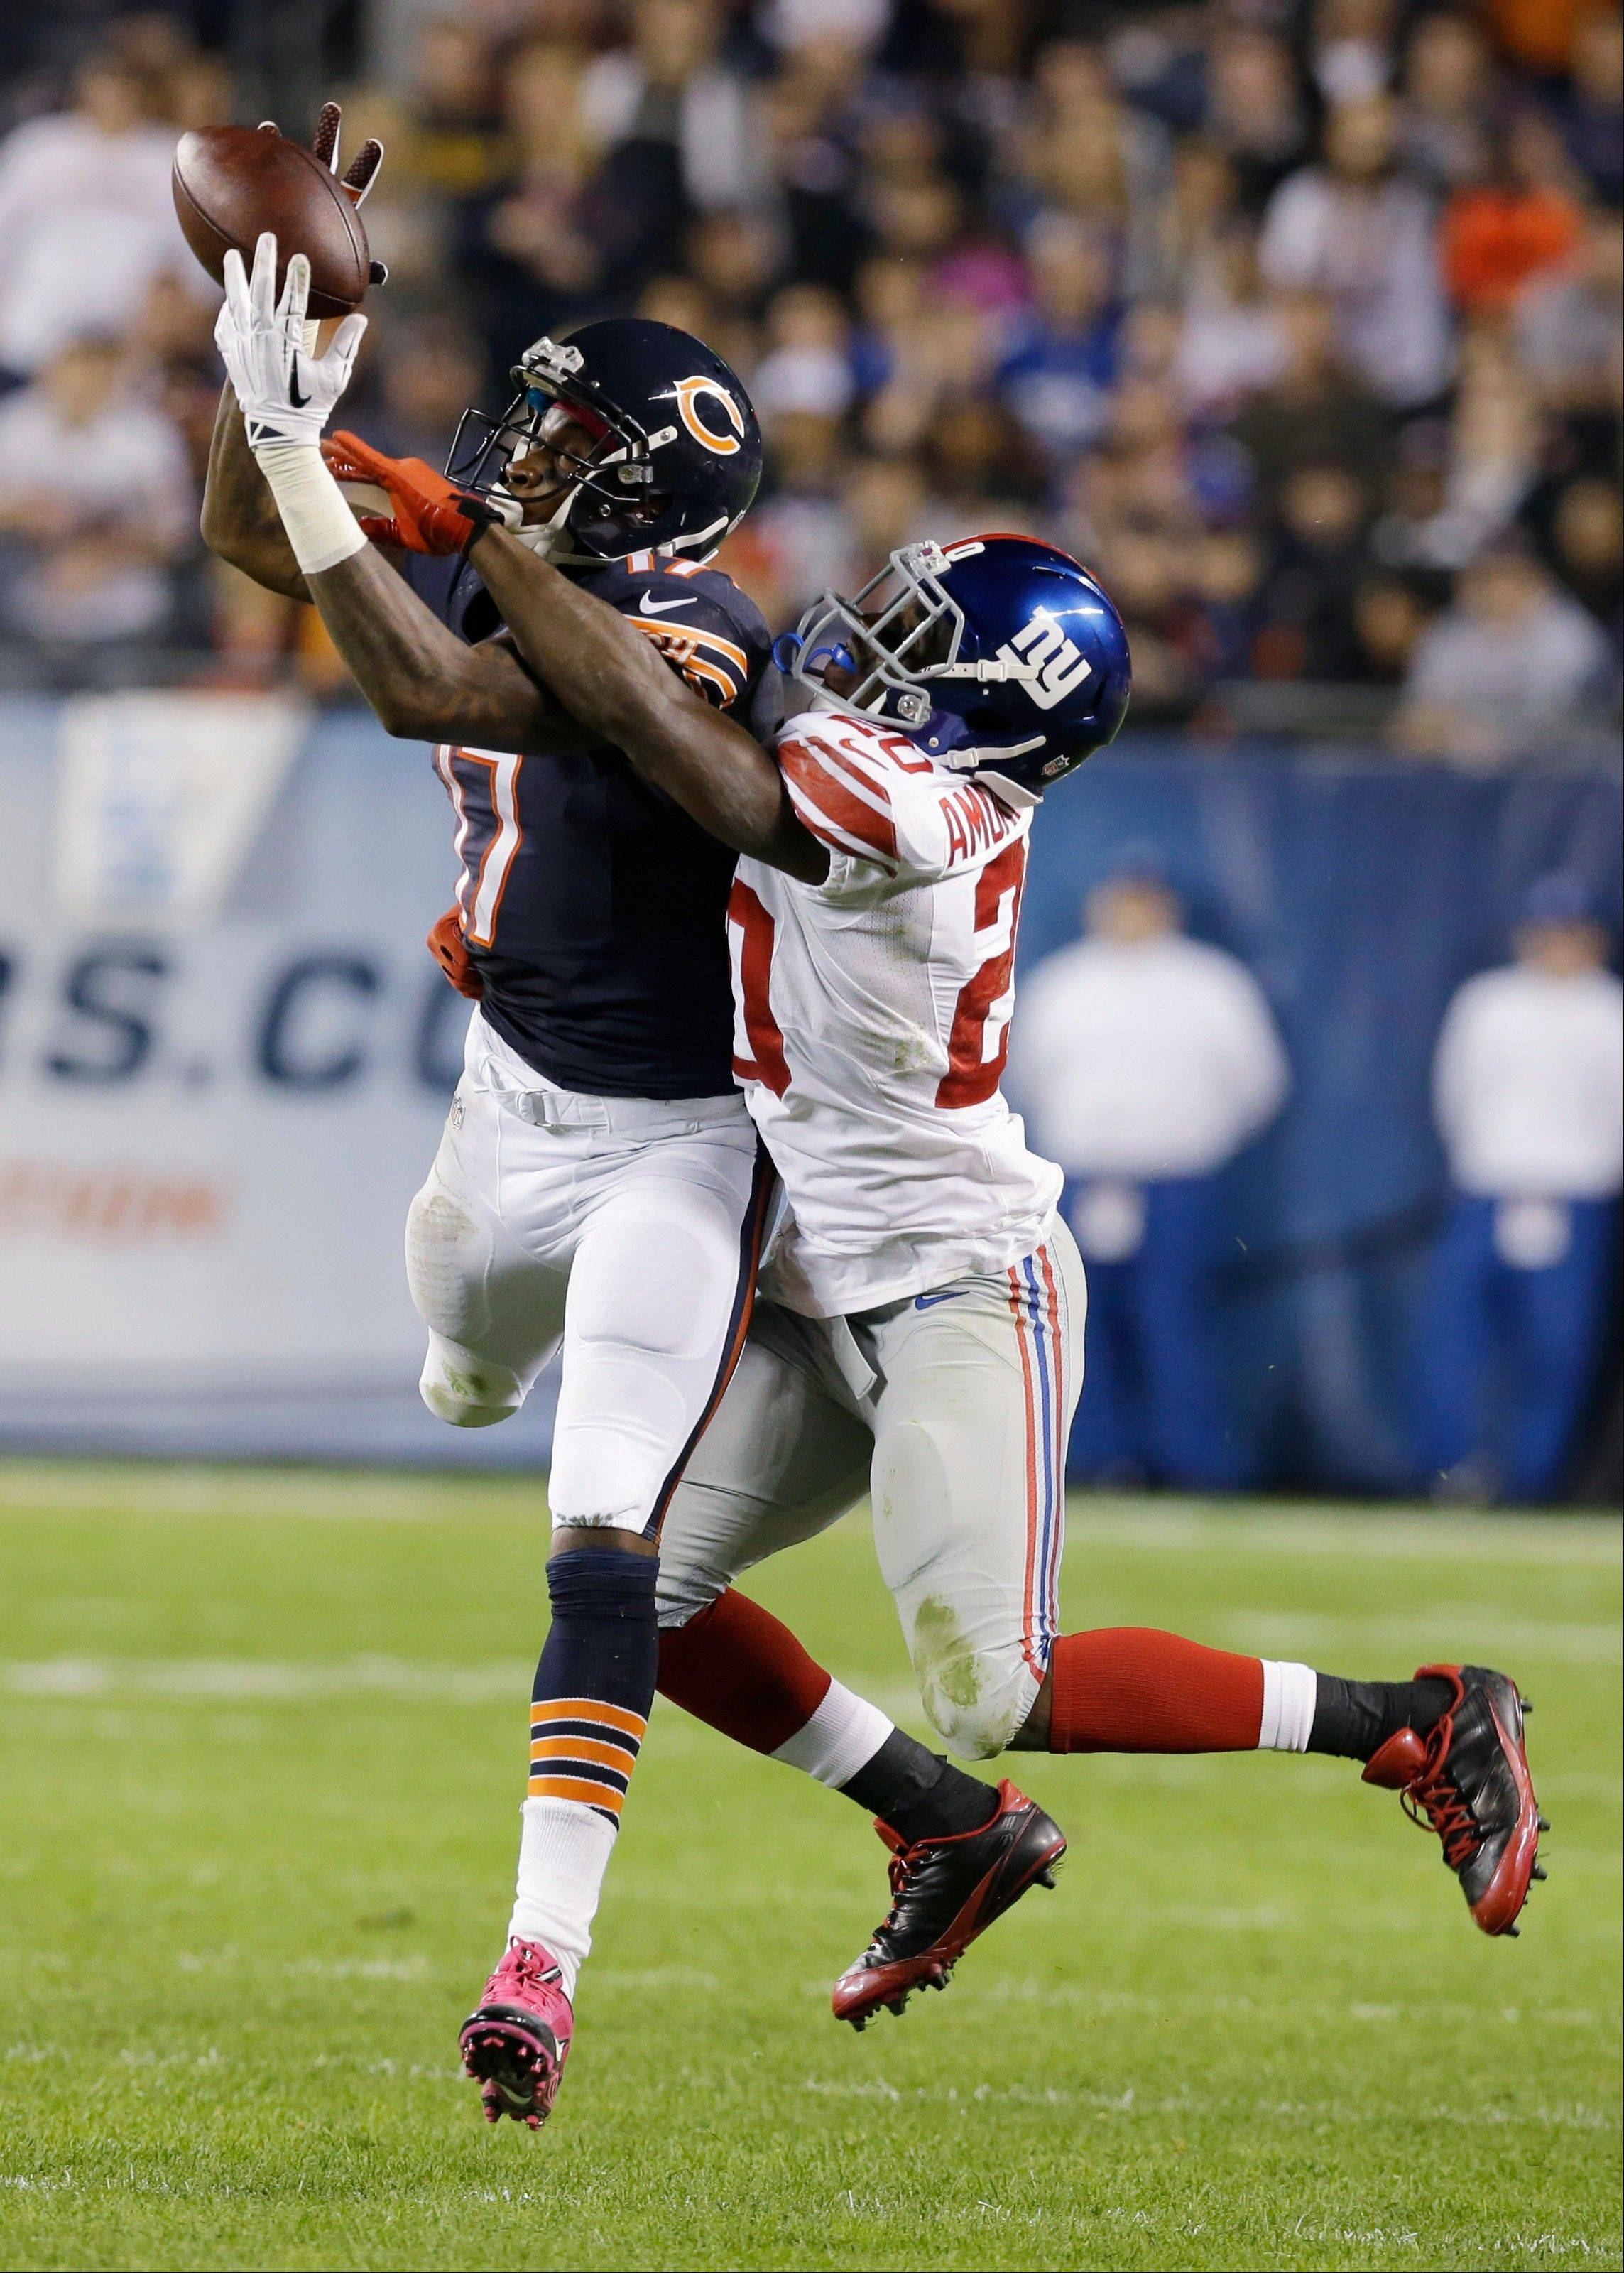 Chicago Bears wide receiver Alshon Jeffery (17) misses a catch under pressure from New York Giants cornerback Prince Amukamara (20) in the second half of an NFL football game, Thursday, Oct. 10, 2013, in Chicago. (AP Photo/Nam Y. Huh)